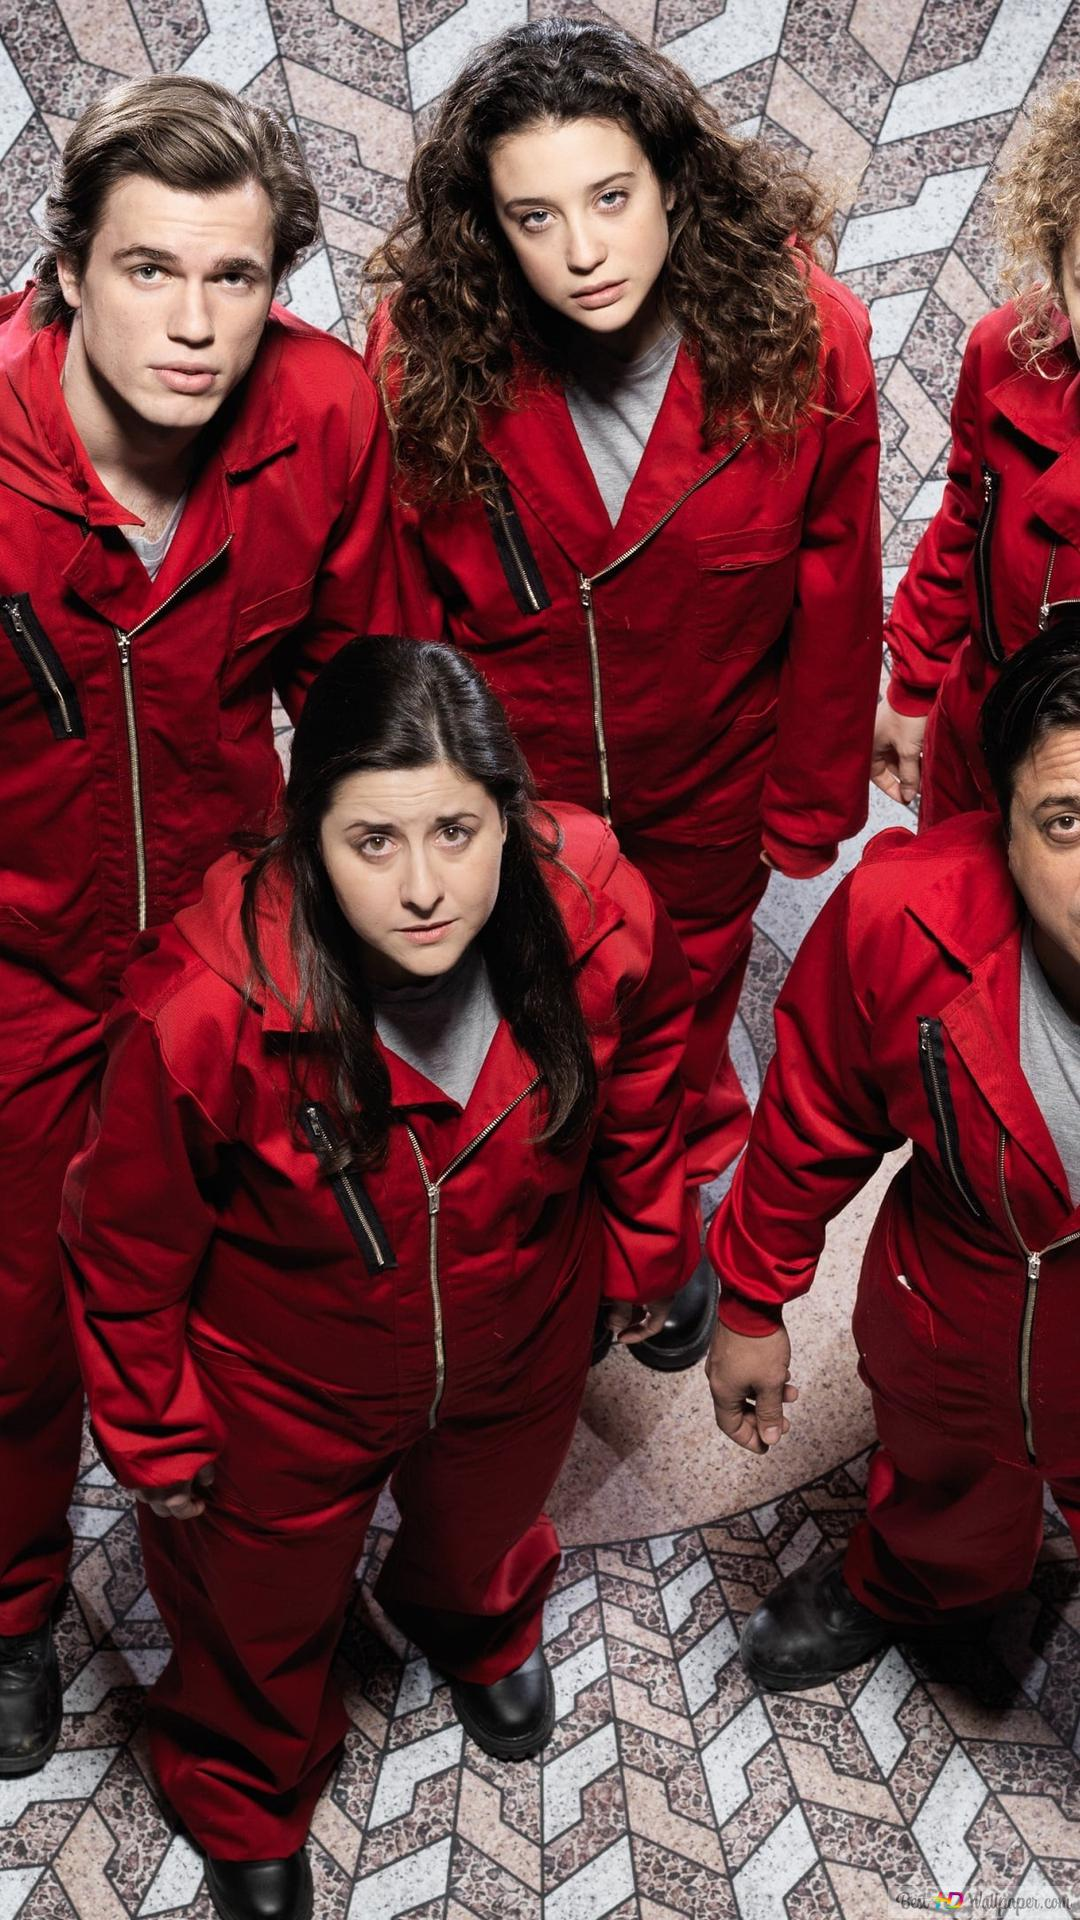 La Casa De Papel Captive Hd Wallpaper Download